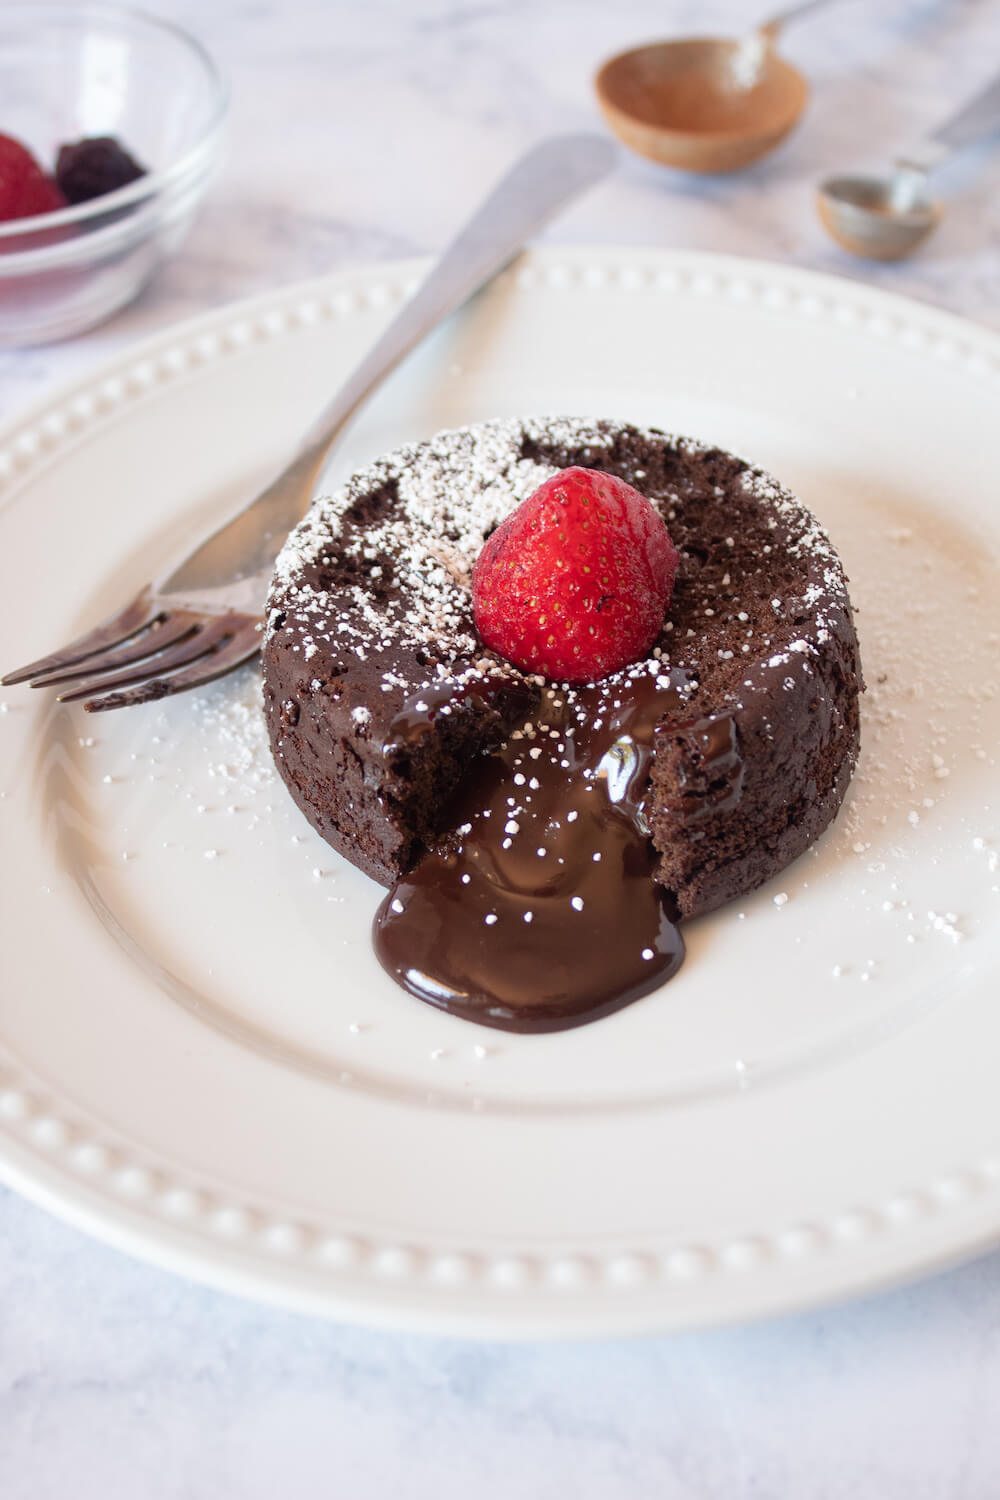 Keto Lava Cake dessert recipe served on a white plate with a fresh strawberry on top.